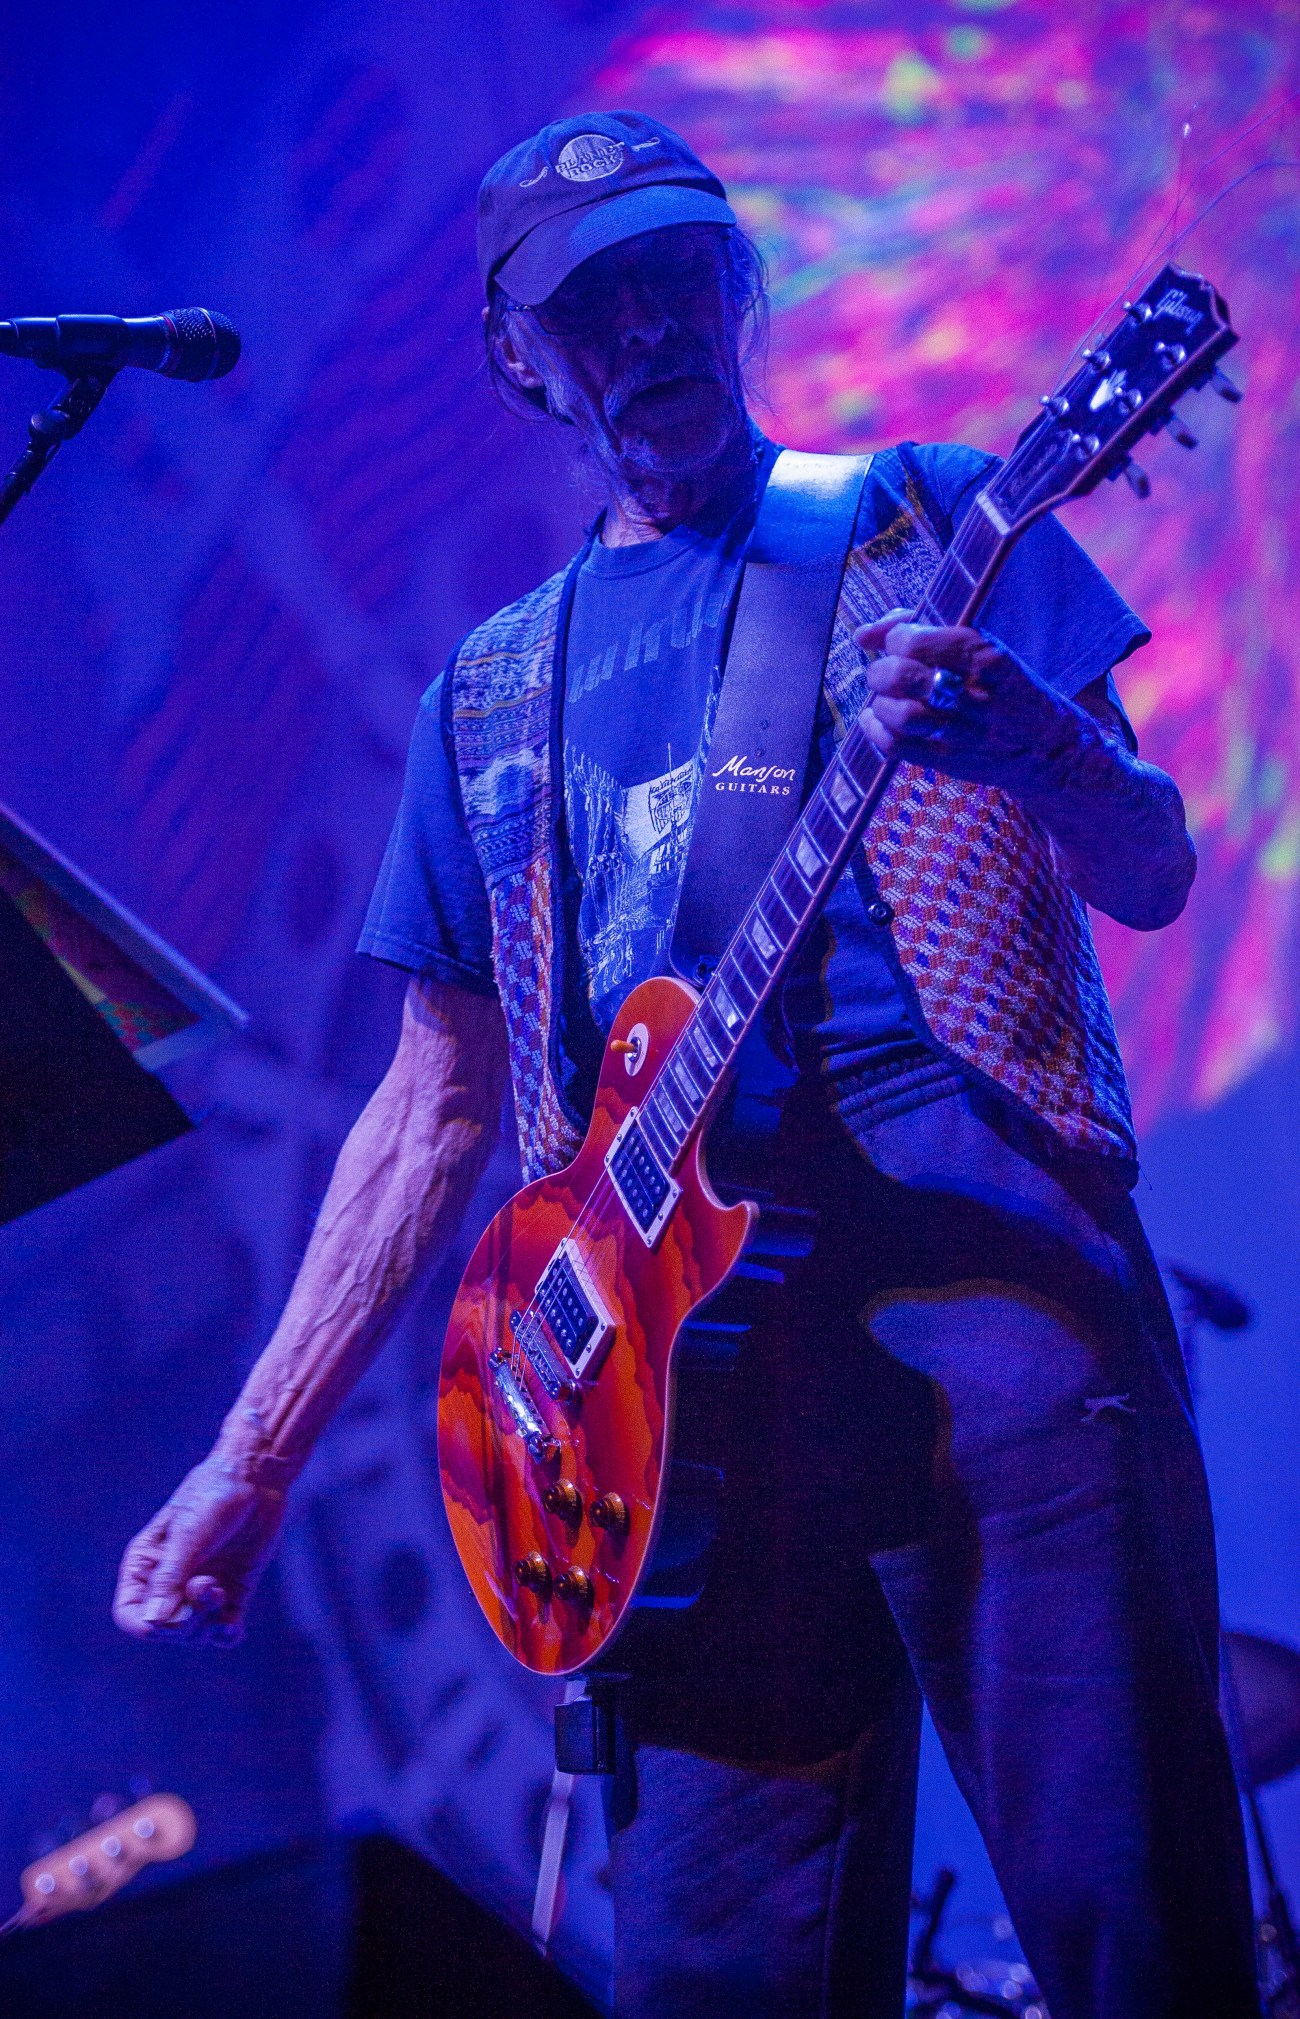 hawkwind manchester albert hall 15.11.19 by mike ainscoe 7